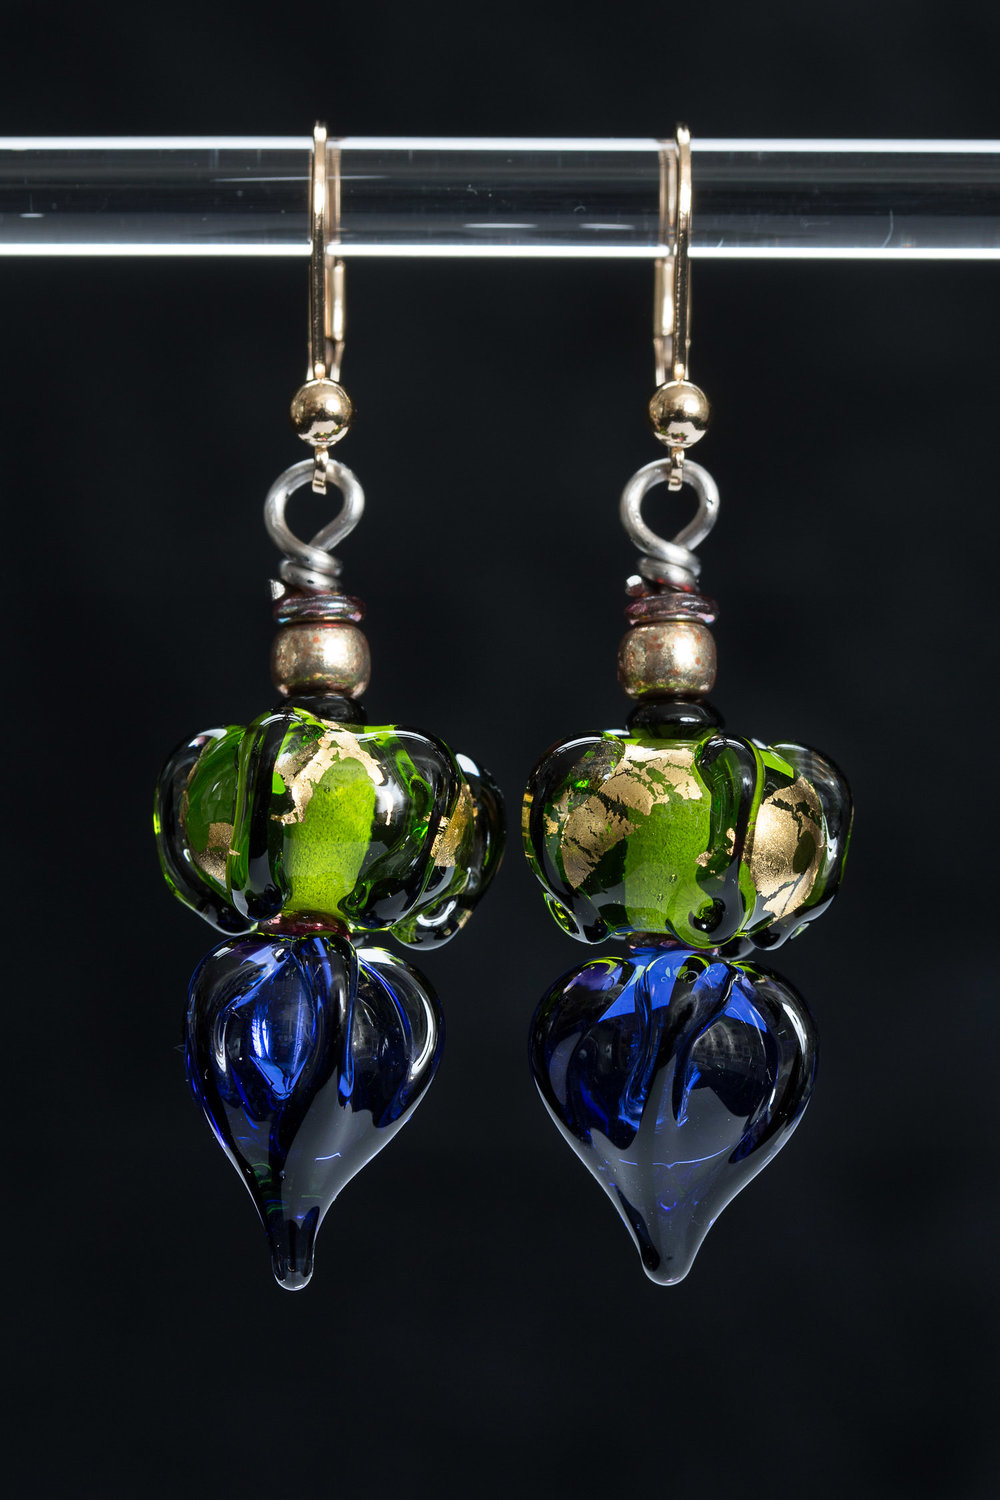 Blue/Green Lantern Earrings